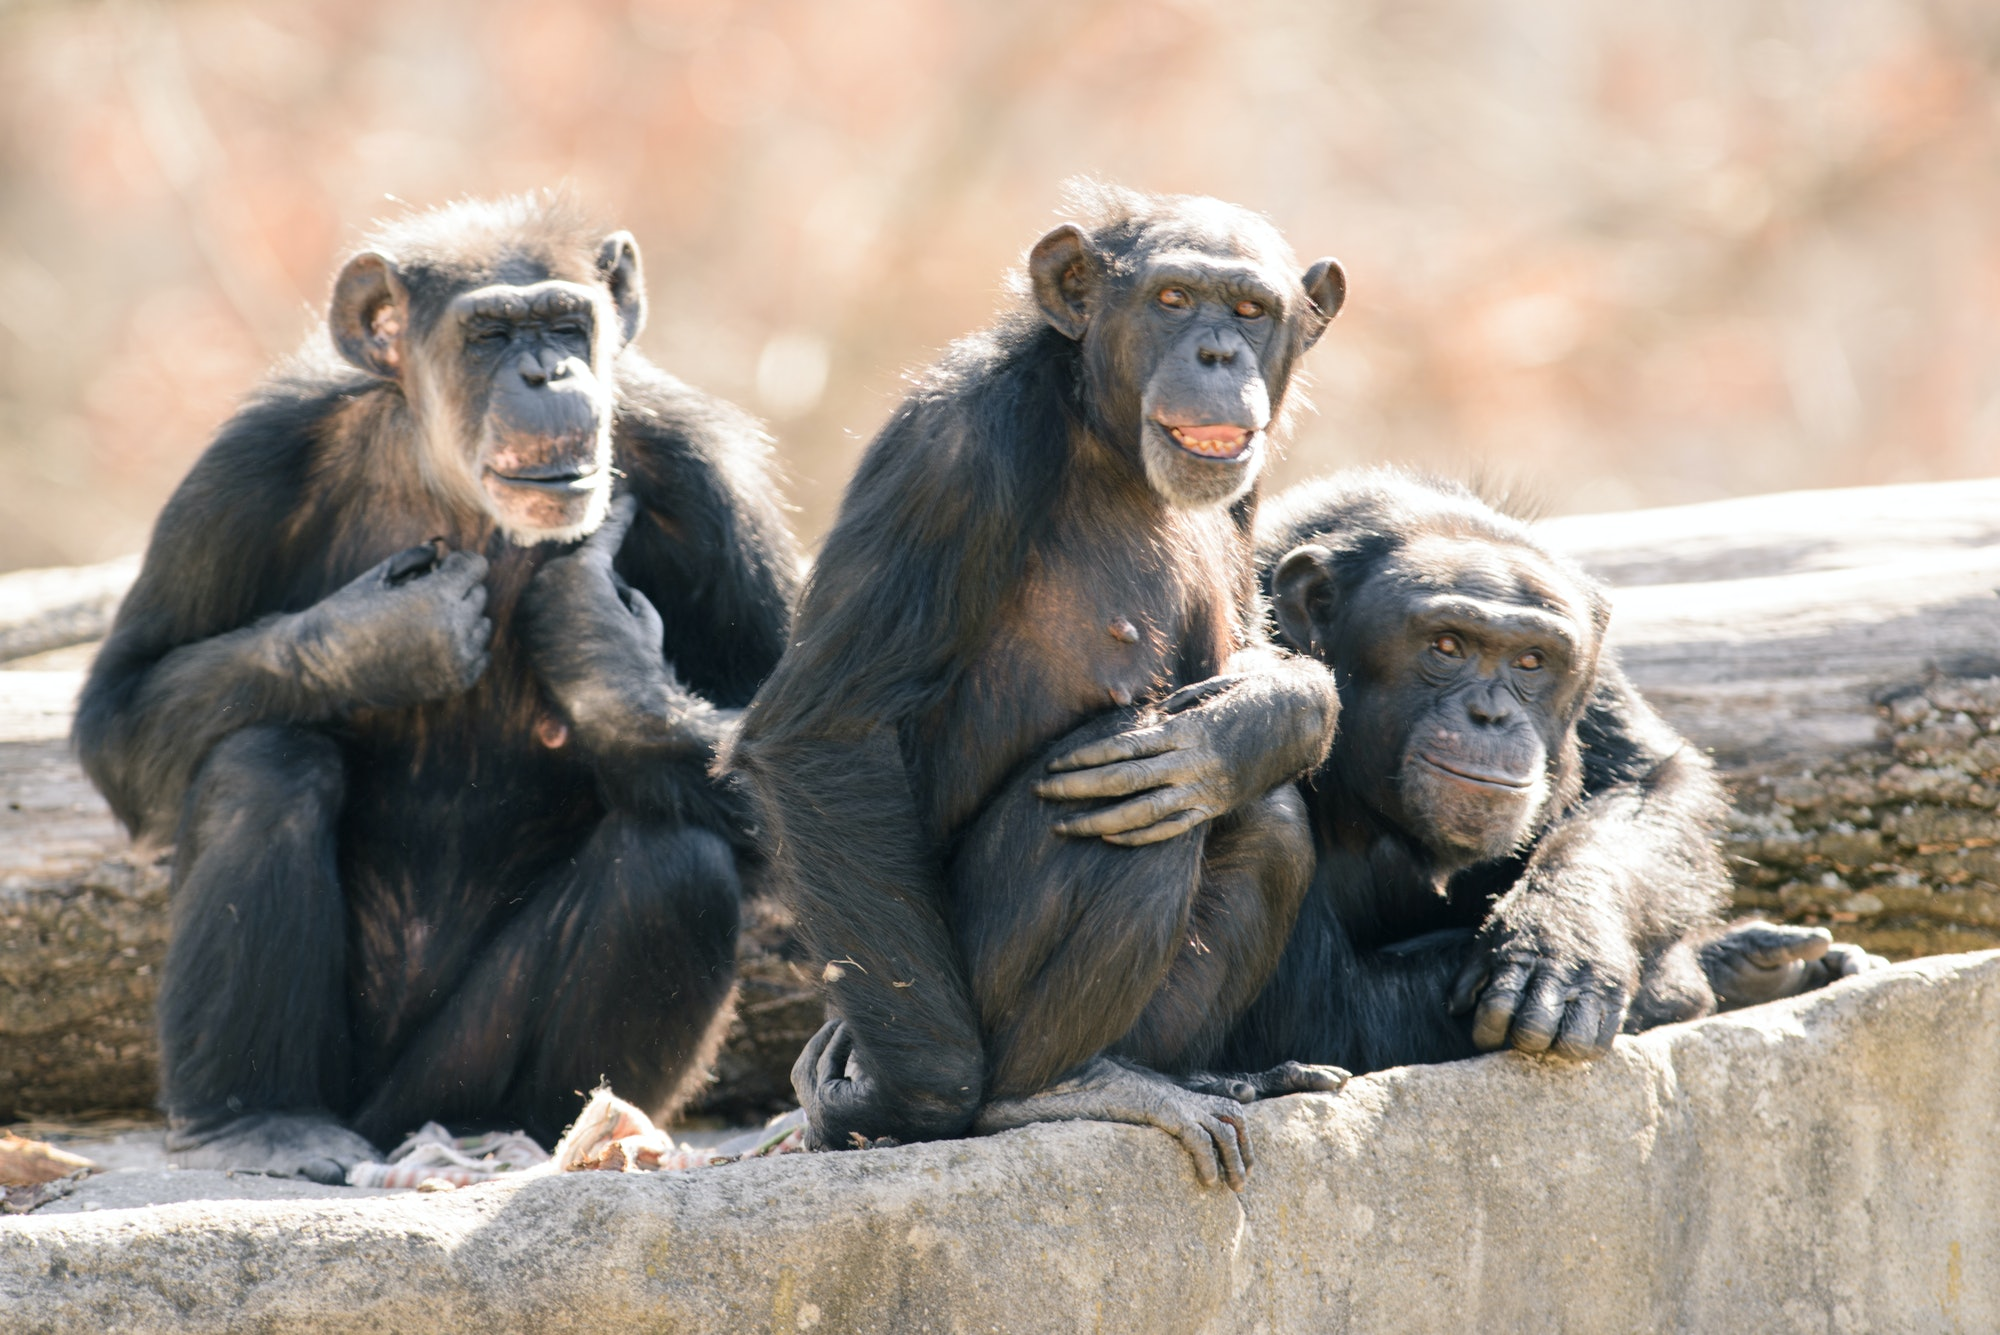 Chimp Group on Rocks